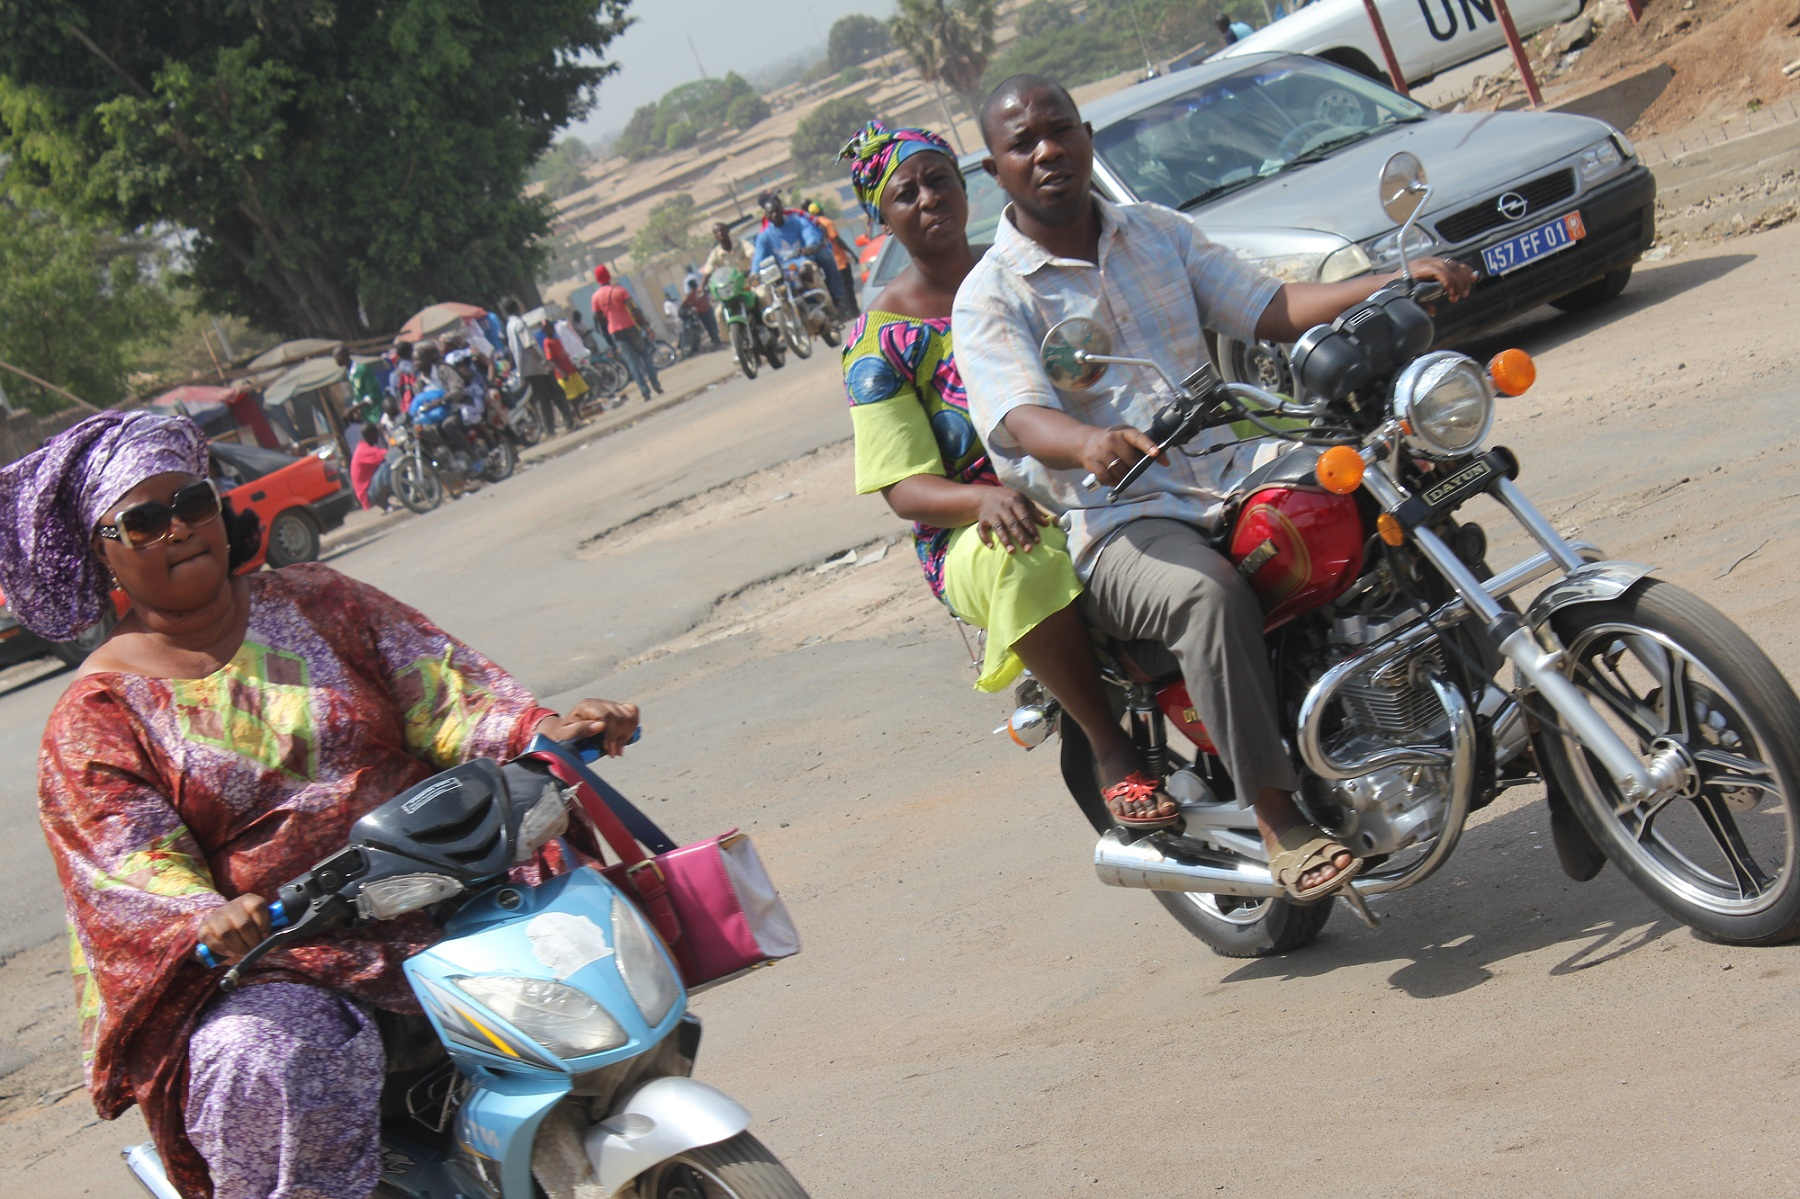 Riders on the streets of Côte d'Ivoire's central city of Bouaké. Government is making a come-back in the northern region